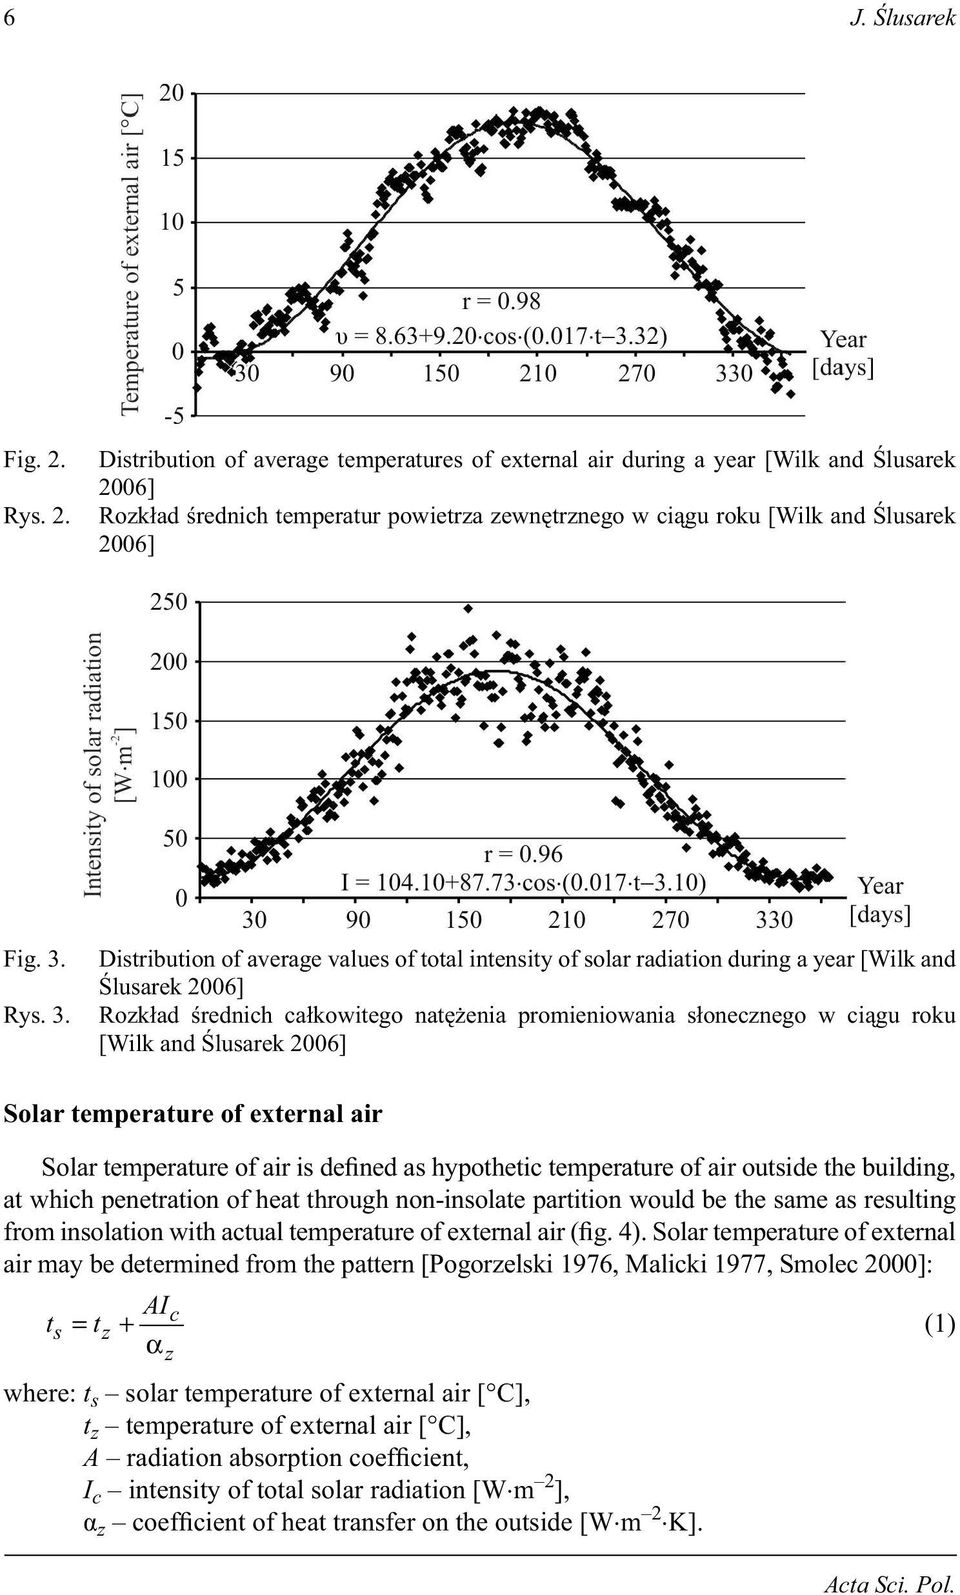 3. Distribution of average values of total intensity of solar radiation during a year [Wilk and lusarek 2006] Rozk ad rednich ca kowitego nat enia promieniowania s onecznego w ci gu roku [Wilk and